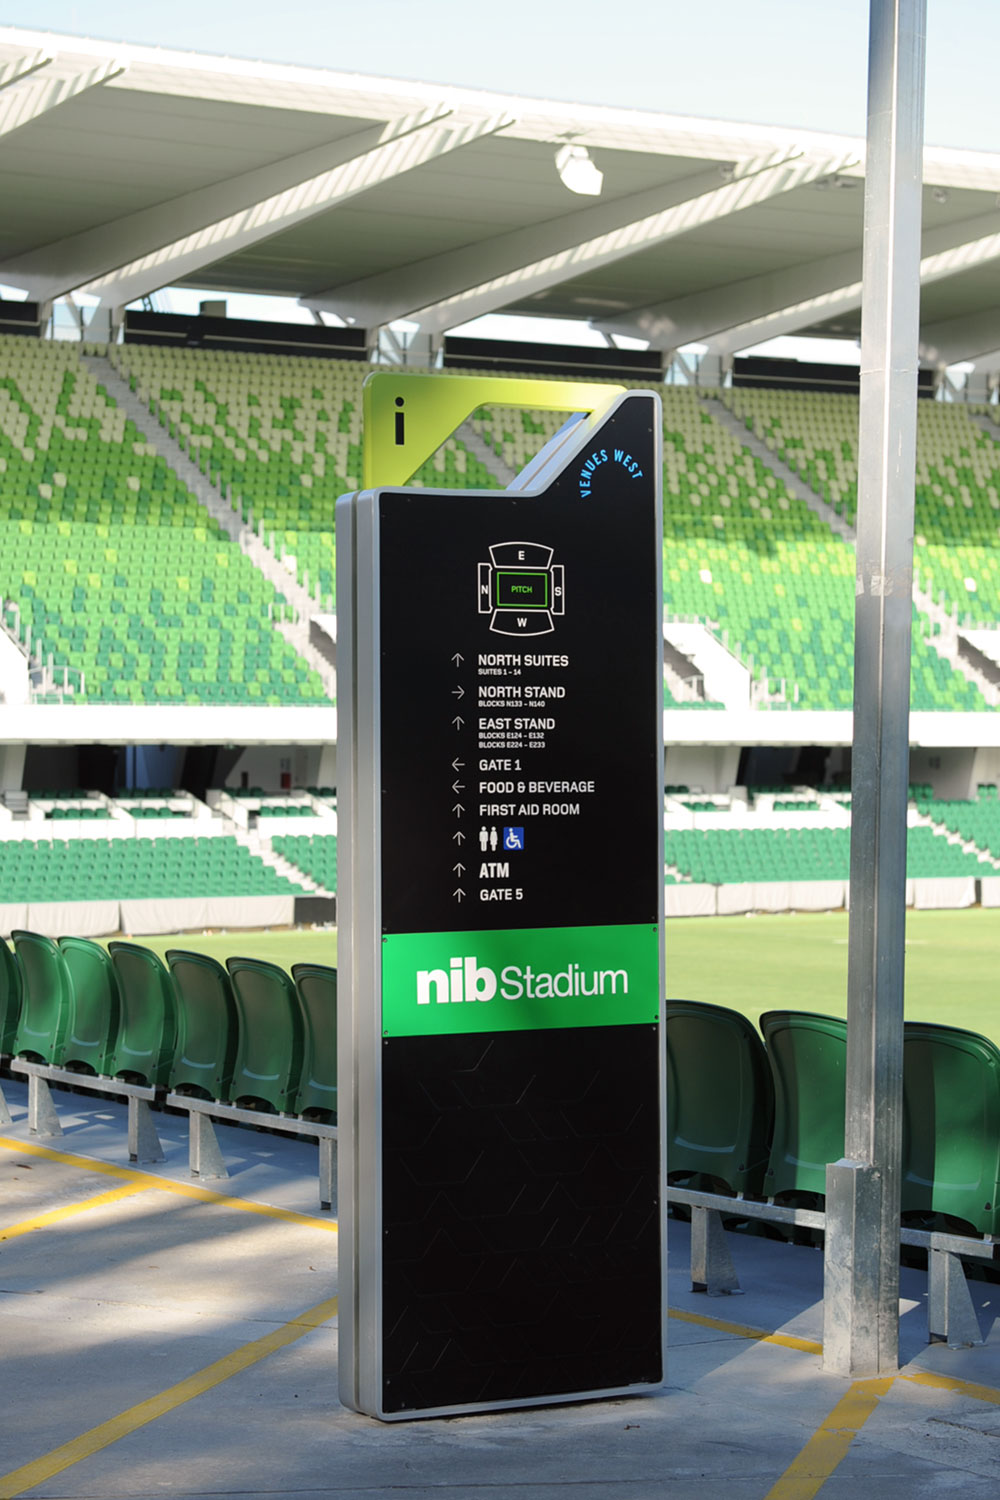 Perth Rectangular Stadium – Wayfinding Signage